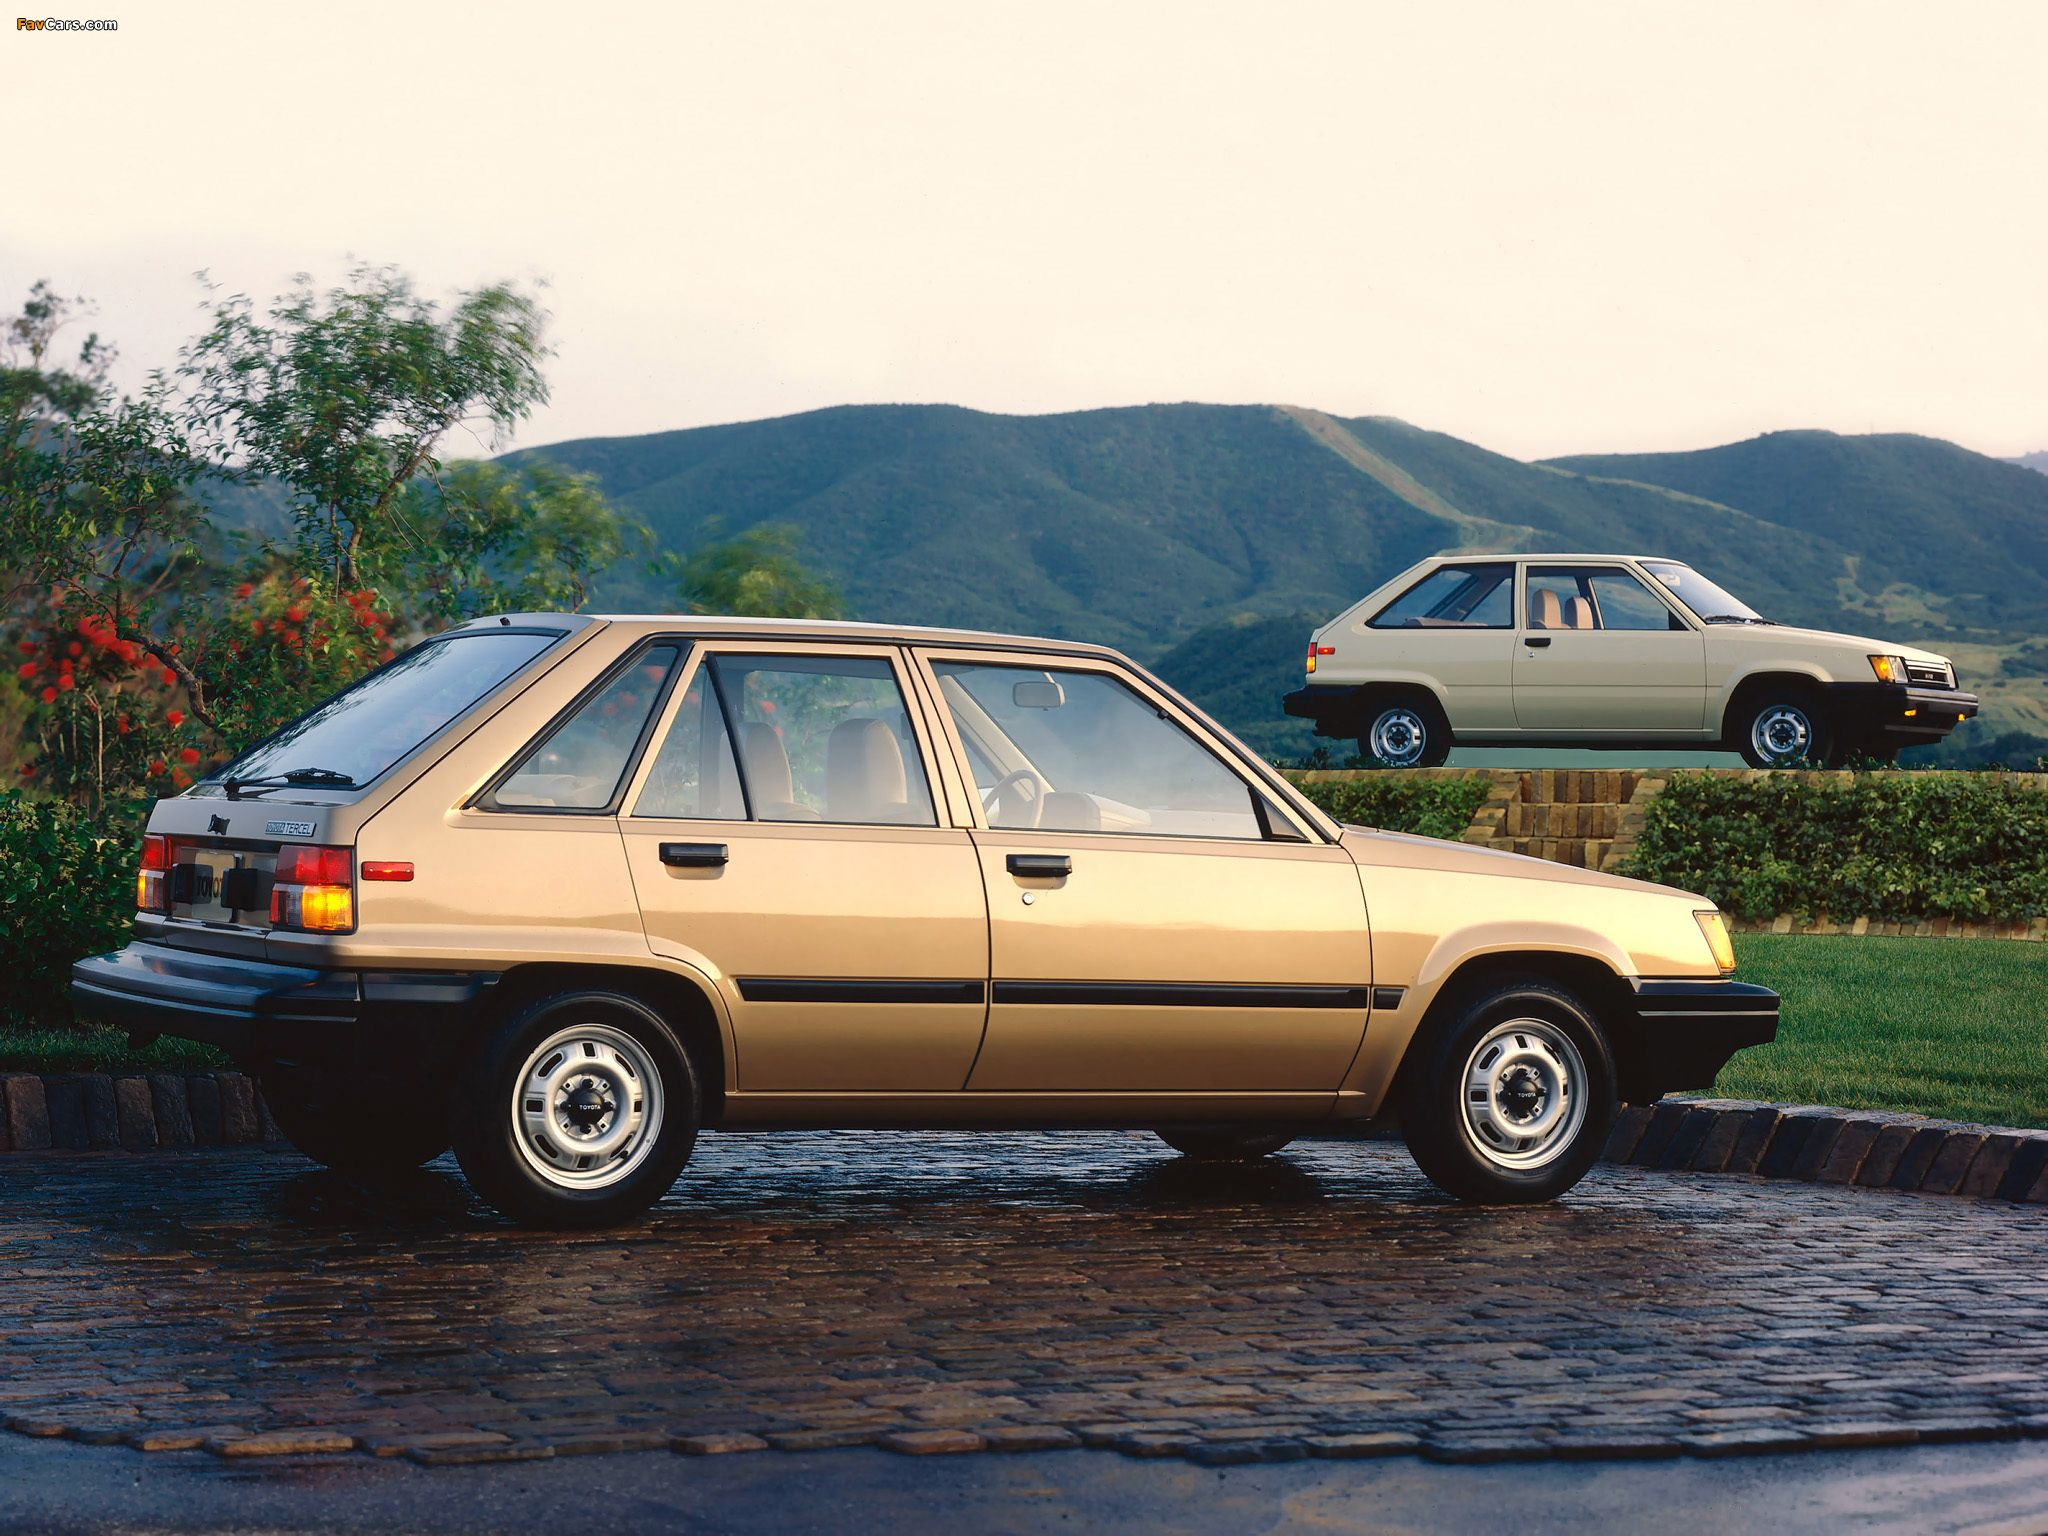 Used Toyota Tercel For Sale Online Today http://www.cars-for-sales ...